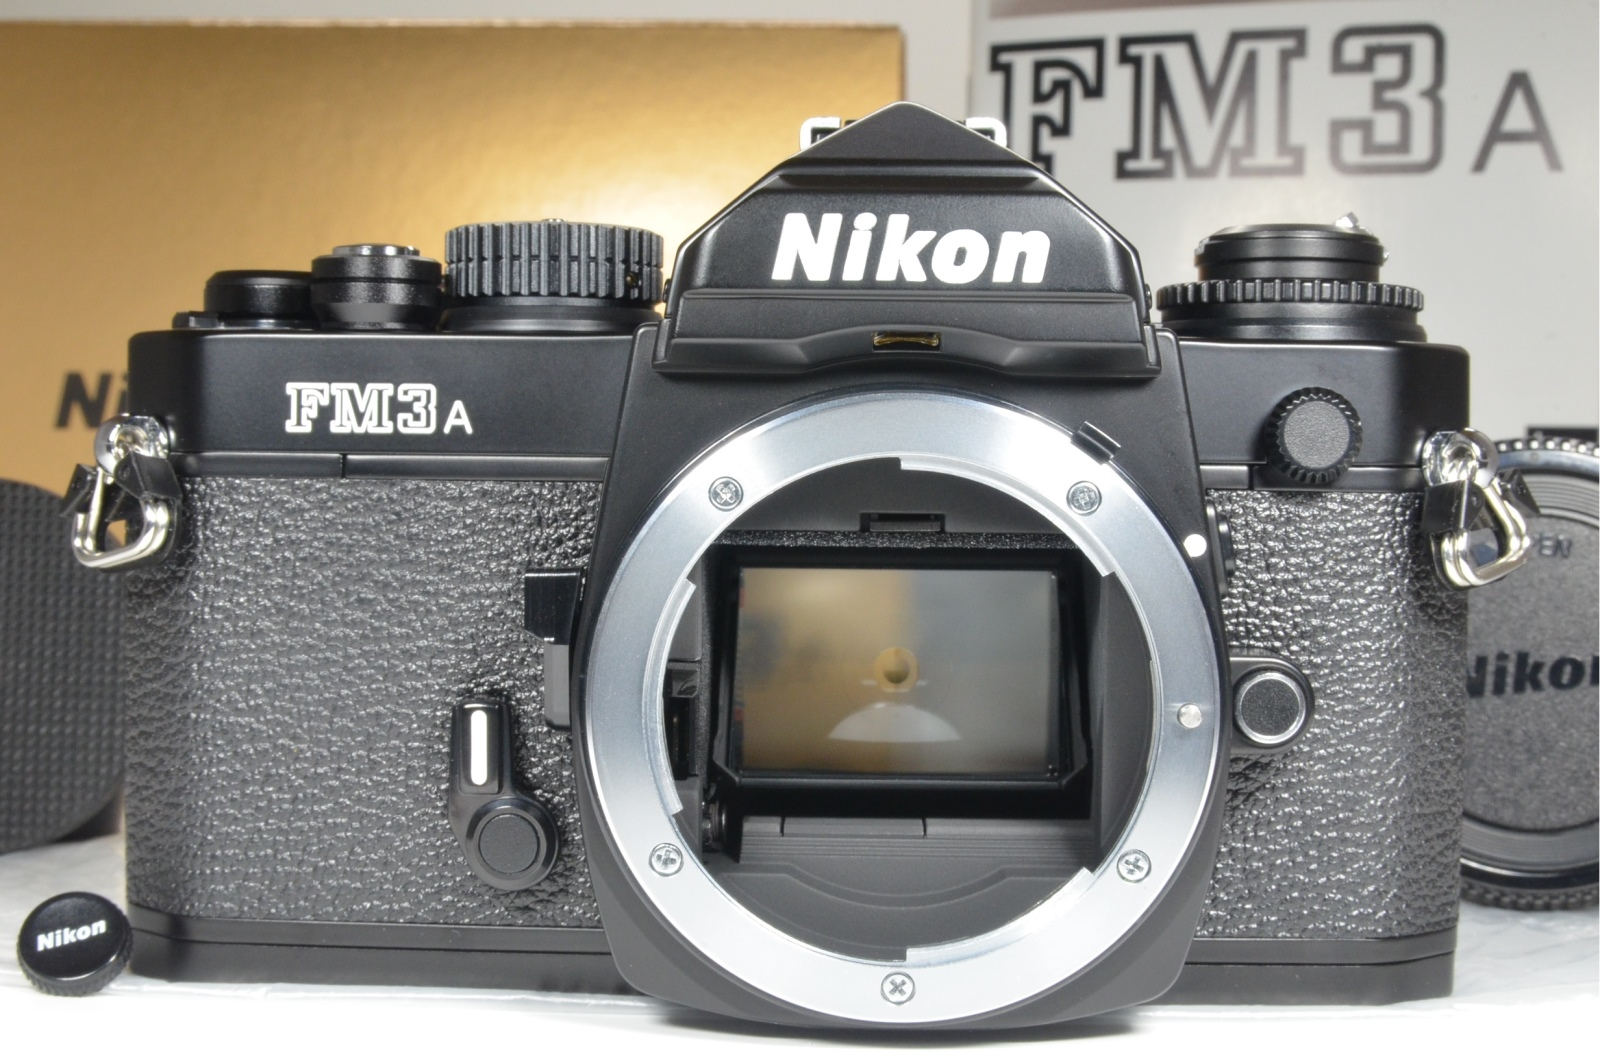 nikon fm3a 35mm film camera black with shutter release from japan